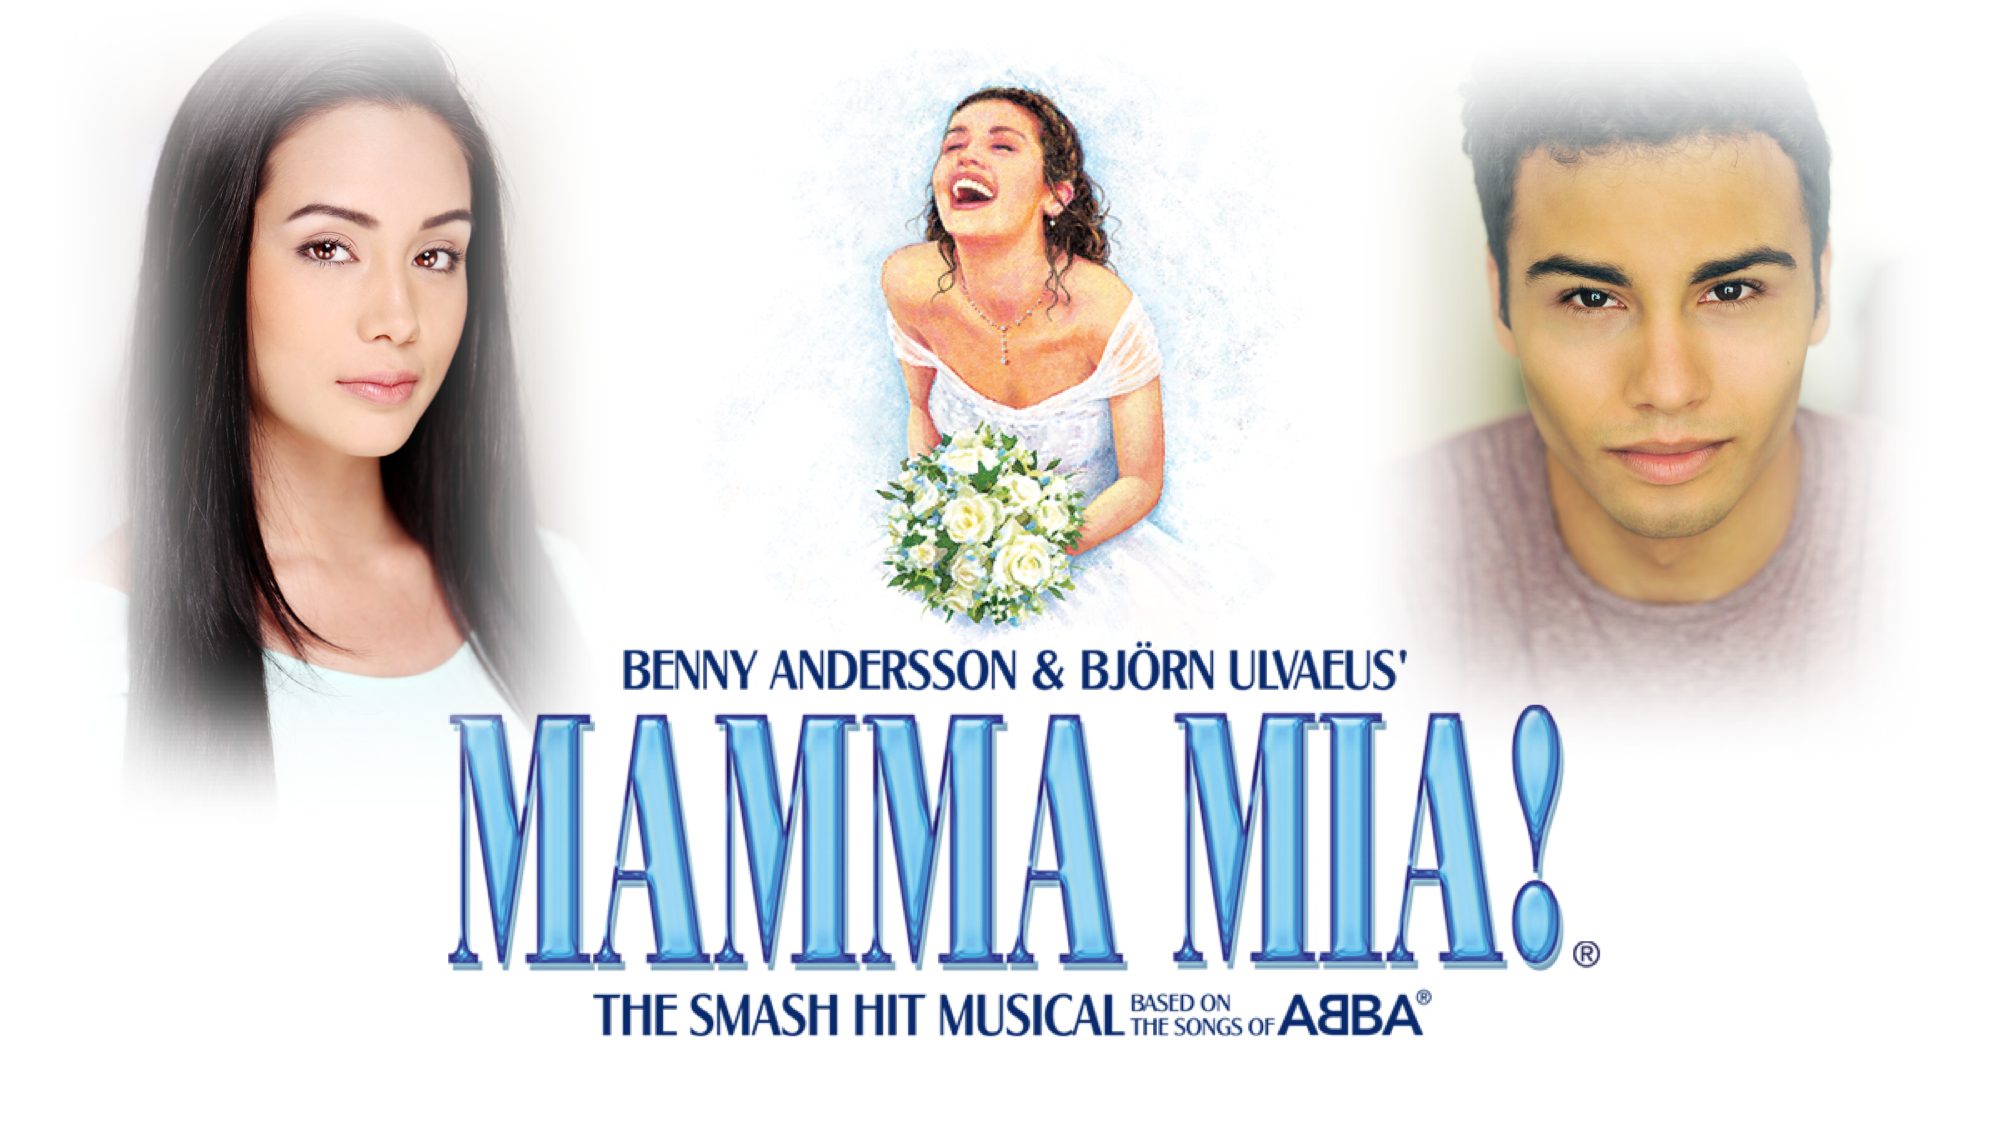 Charlotte Coggin and Kyle Flaherty are cast in Mamma Mia for Royal Caribbean Crusies